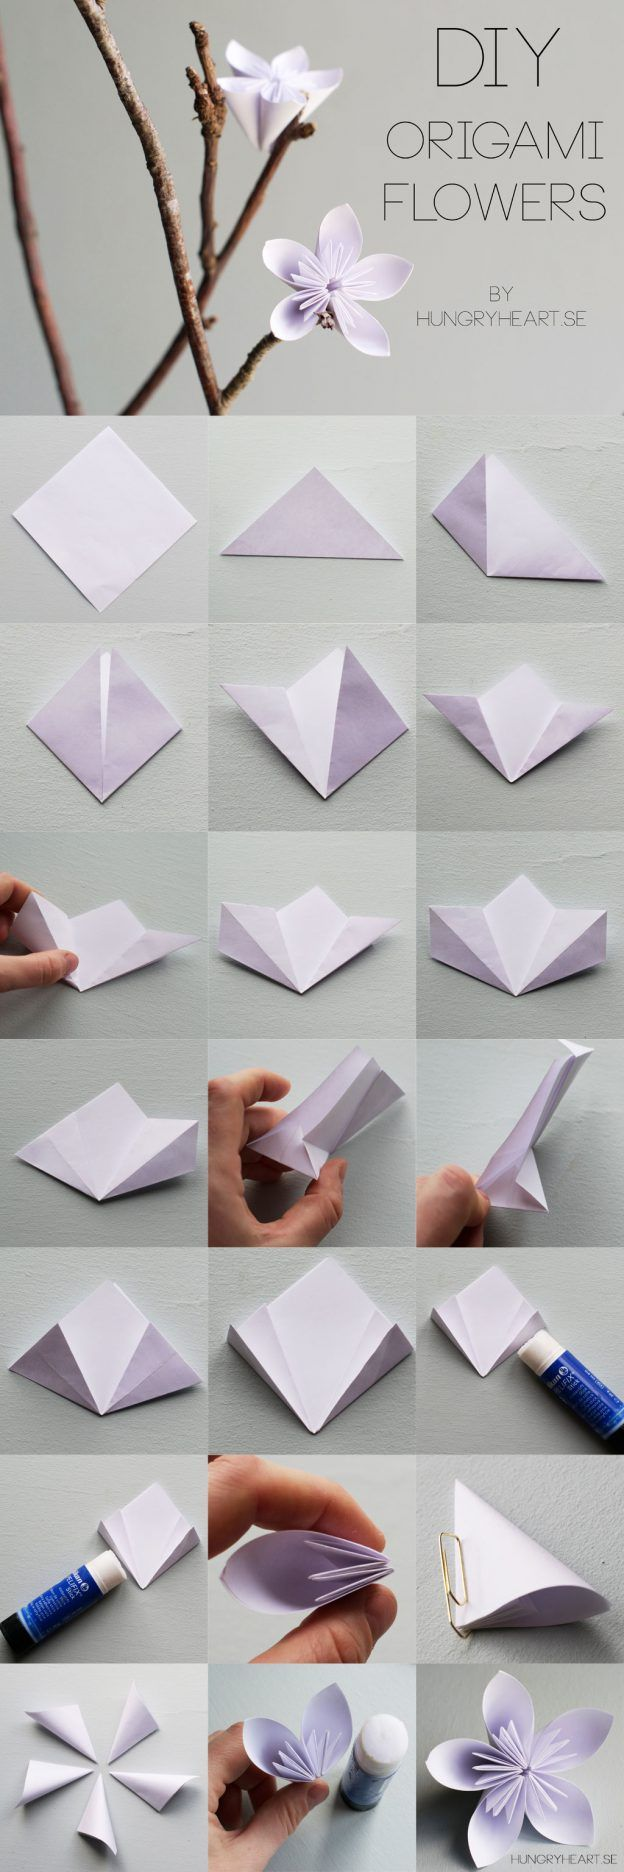 Diy origami flower step by step tutorial for Decoration origami